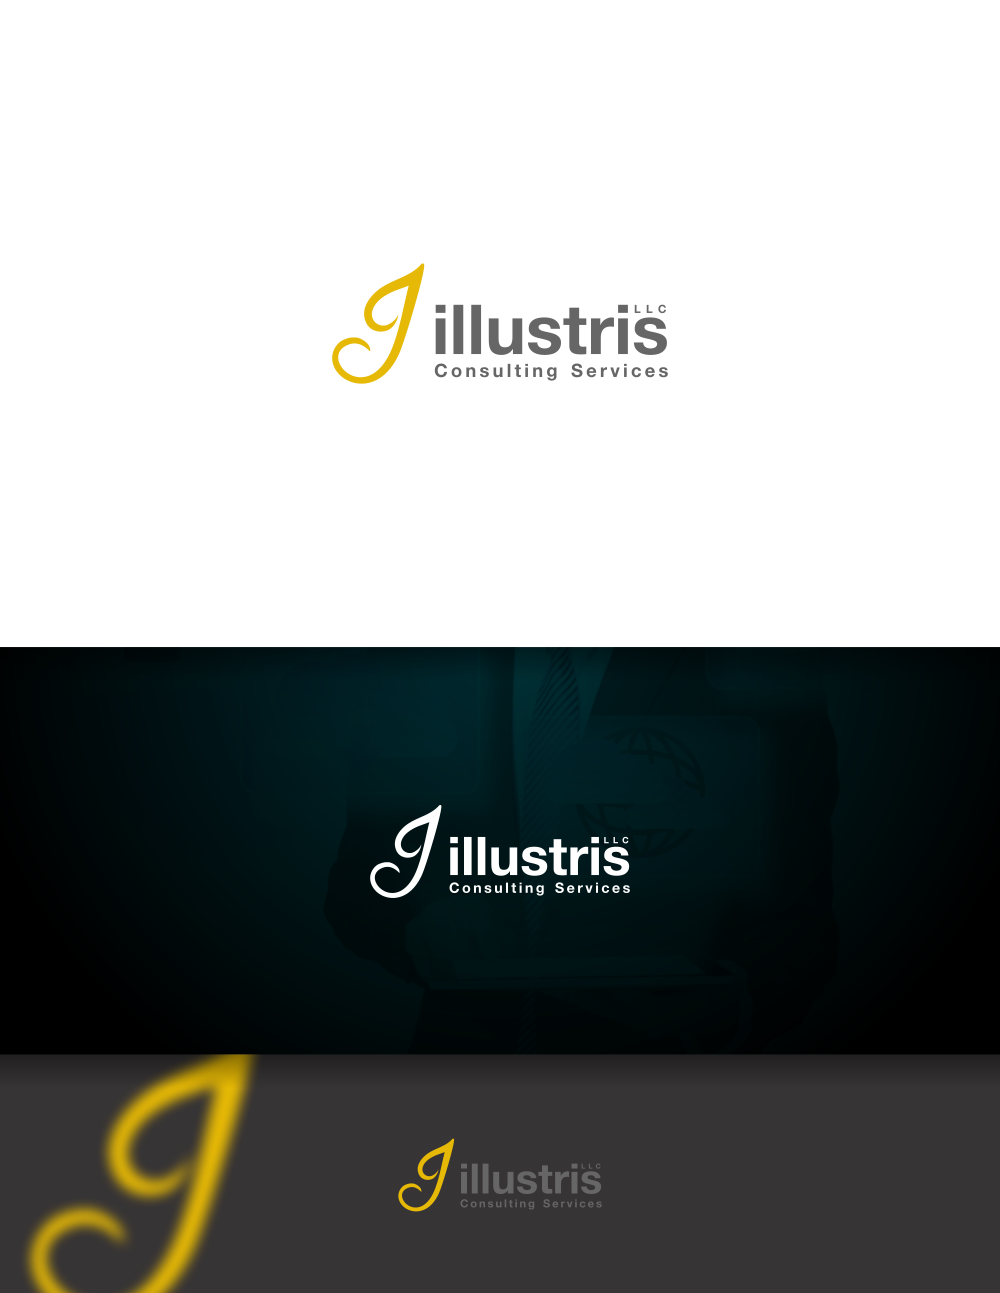 Professional upmarket information technology logo design for Design consulting services